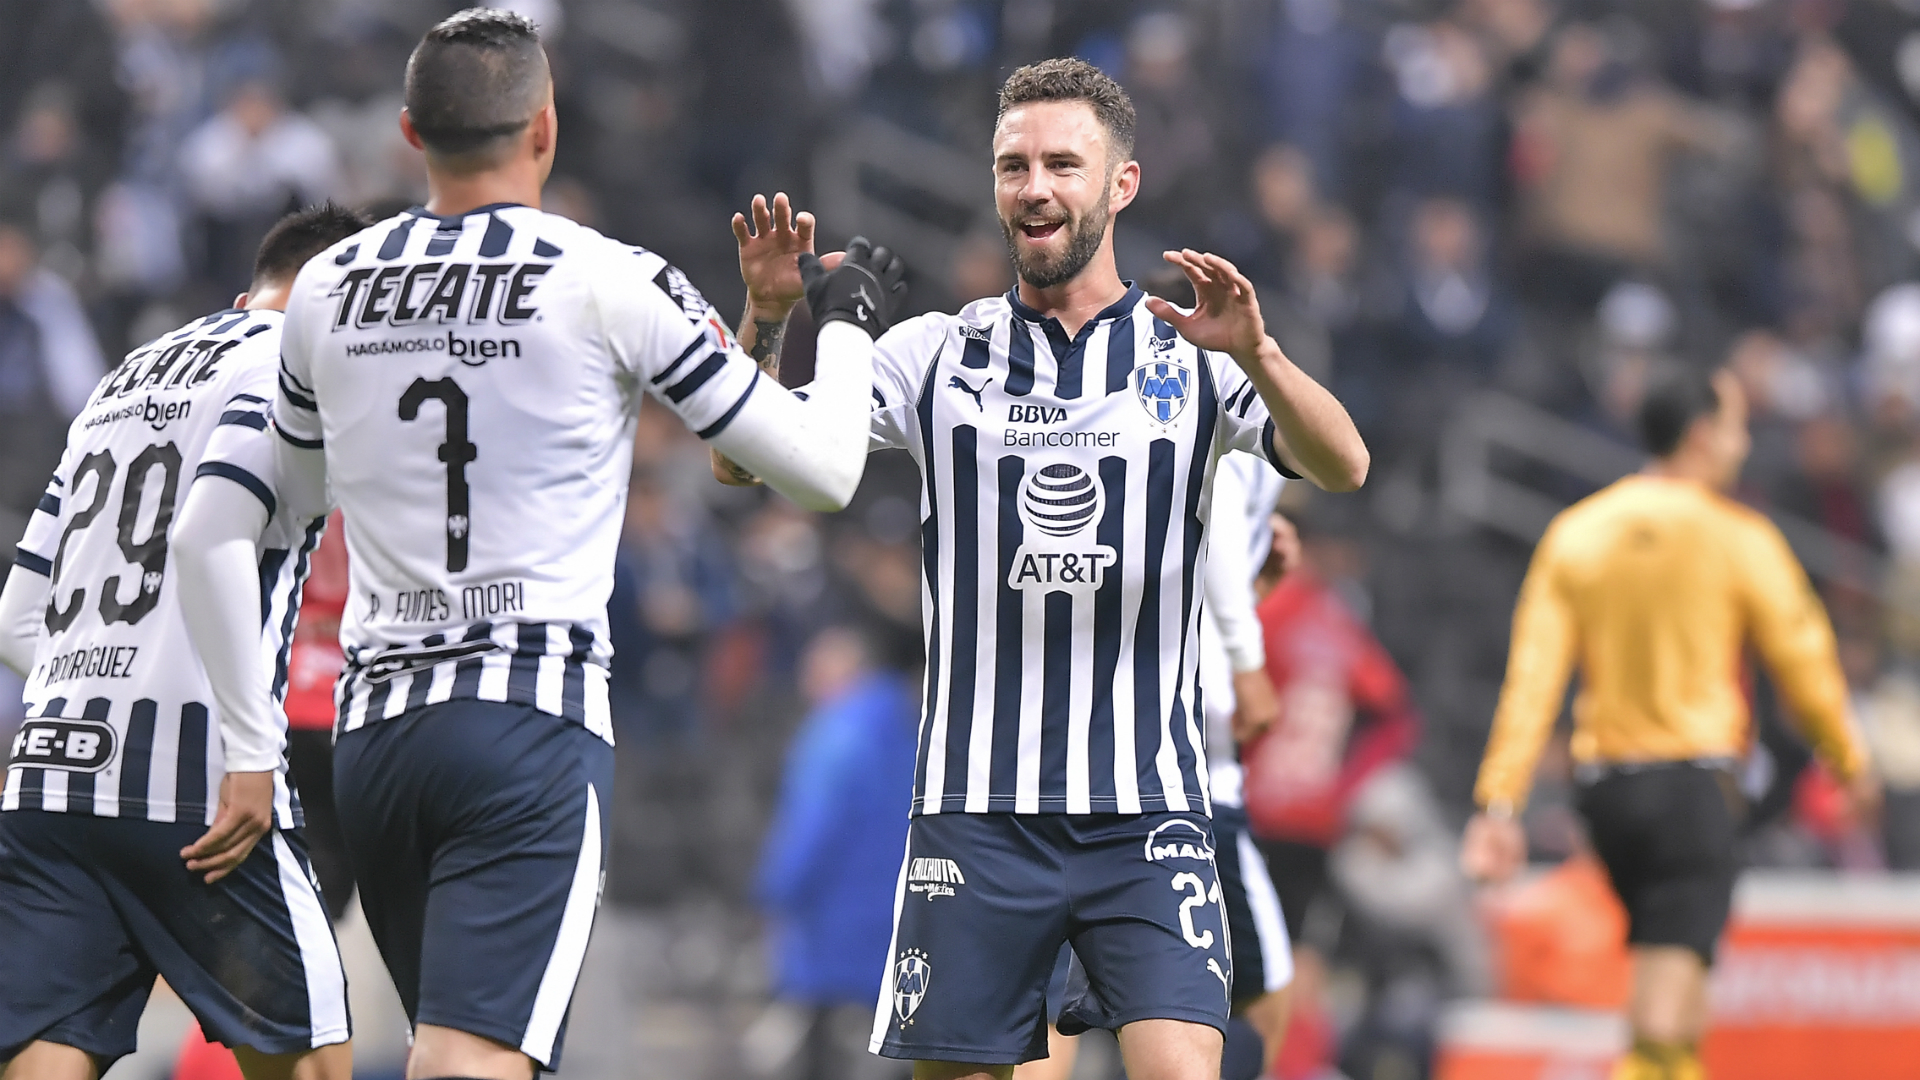 Sporting Kansas City 2 Monterrey 5 (agg 2-10): Tigres await in Champions League final